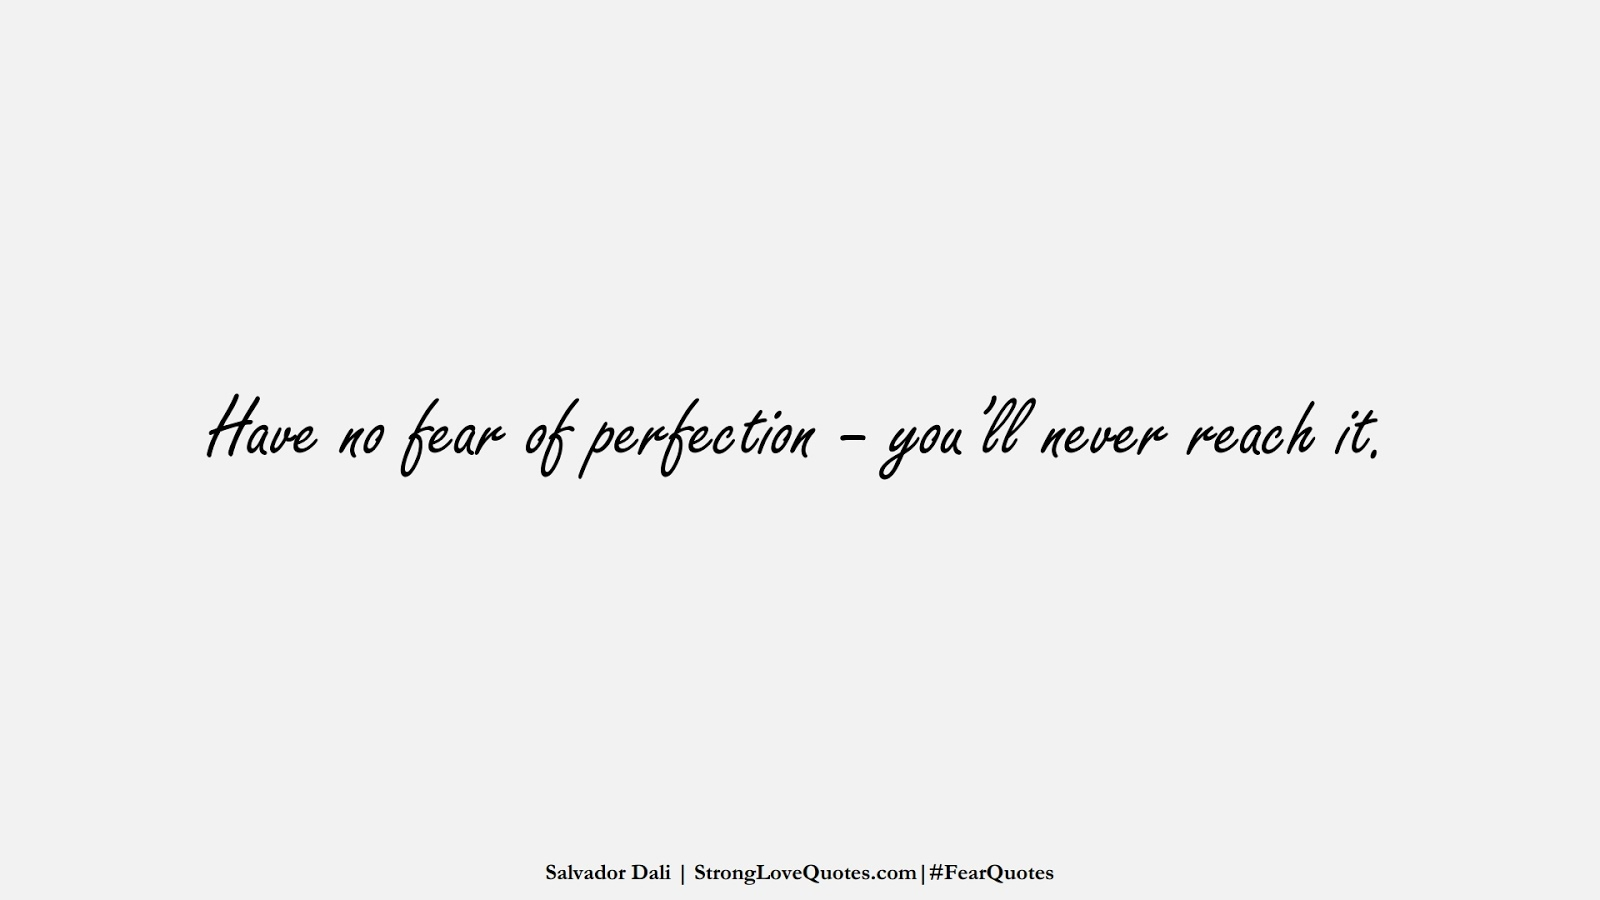 Have no fear of perfection – you'll never reach it. (Salvador Dali);  #FearQuotes